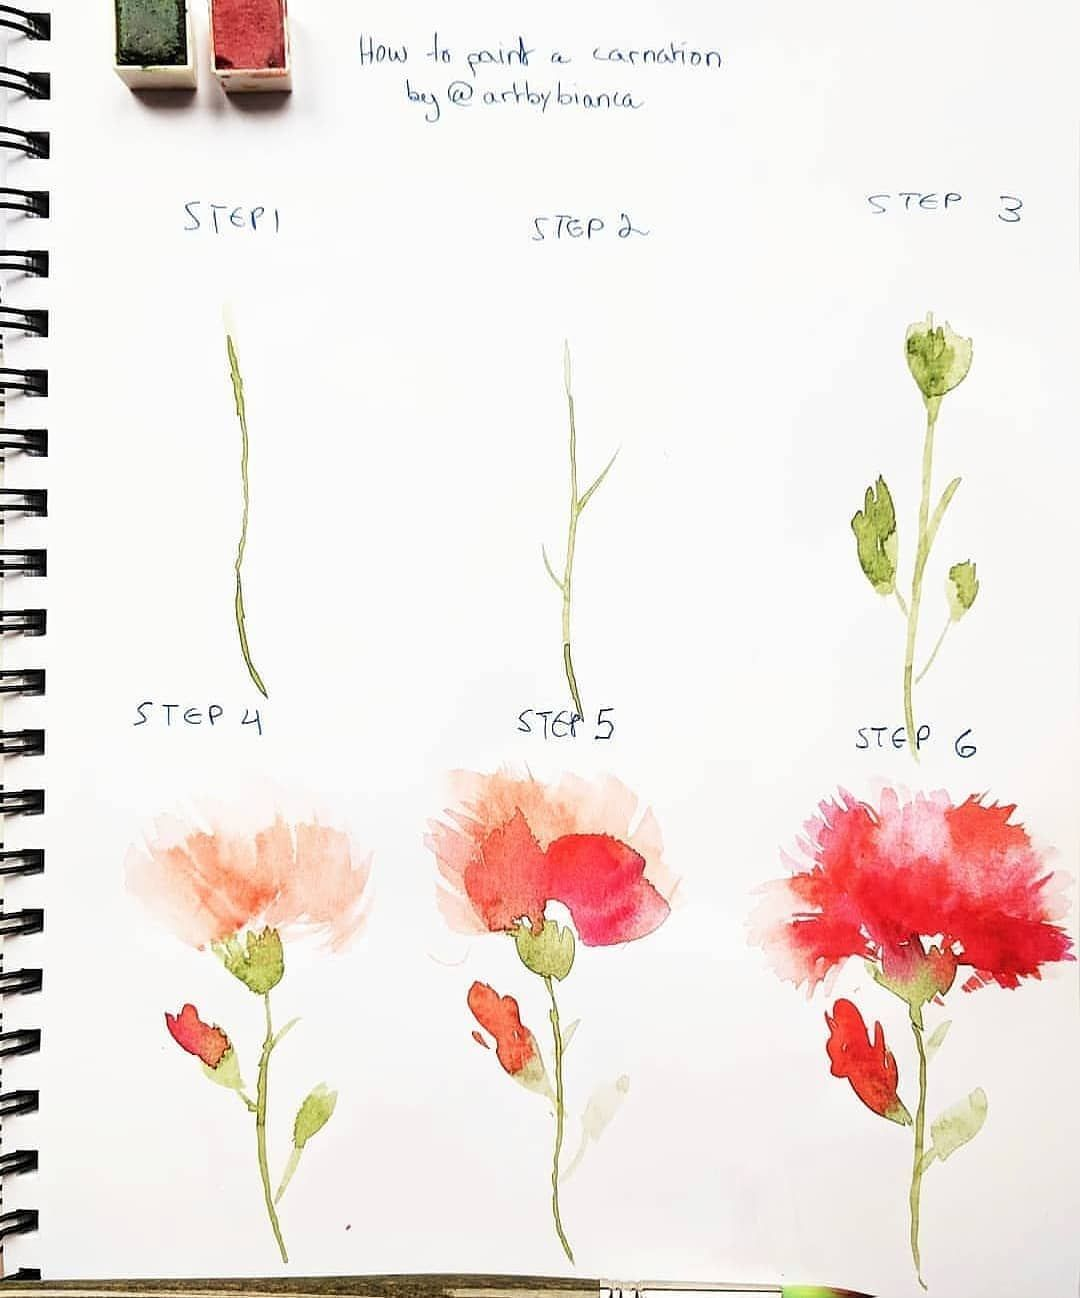 How To Paint A Carnation Artbybianca Botanicalart Howtopaint Arttutoria Watercolor Flowers Tutorial Watercolor Paintings Tutorials Flower Drawing Tutorials